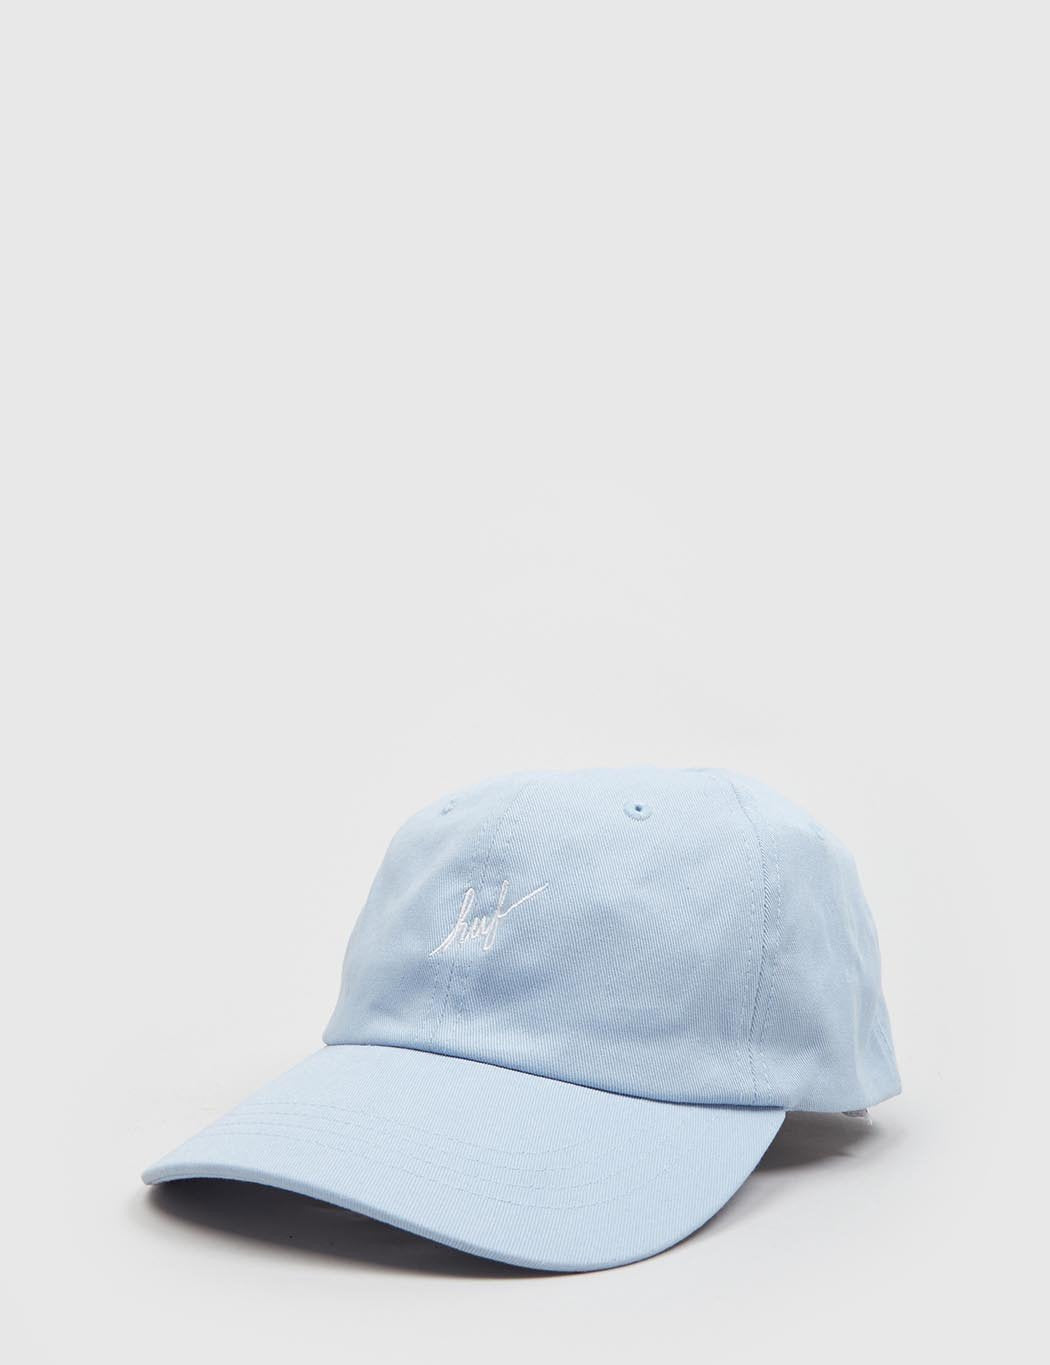 8406127f05a HUF Script Curved Peak Cap in Light Blue